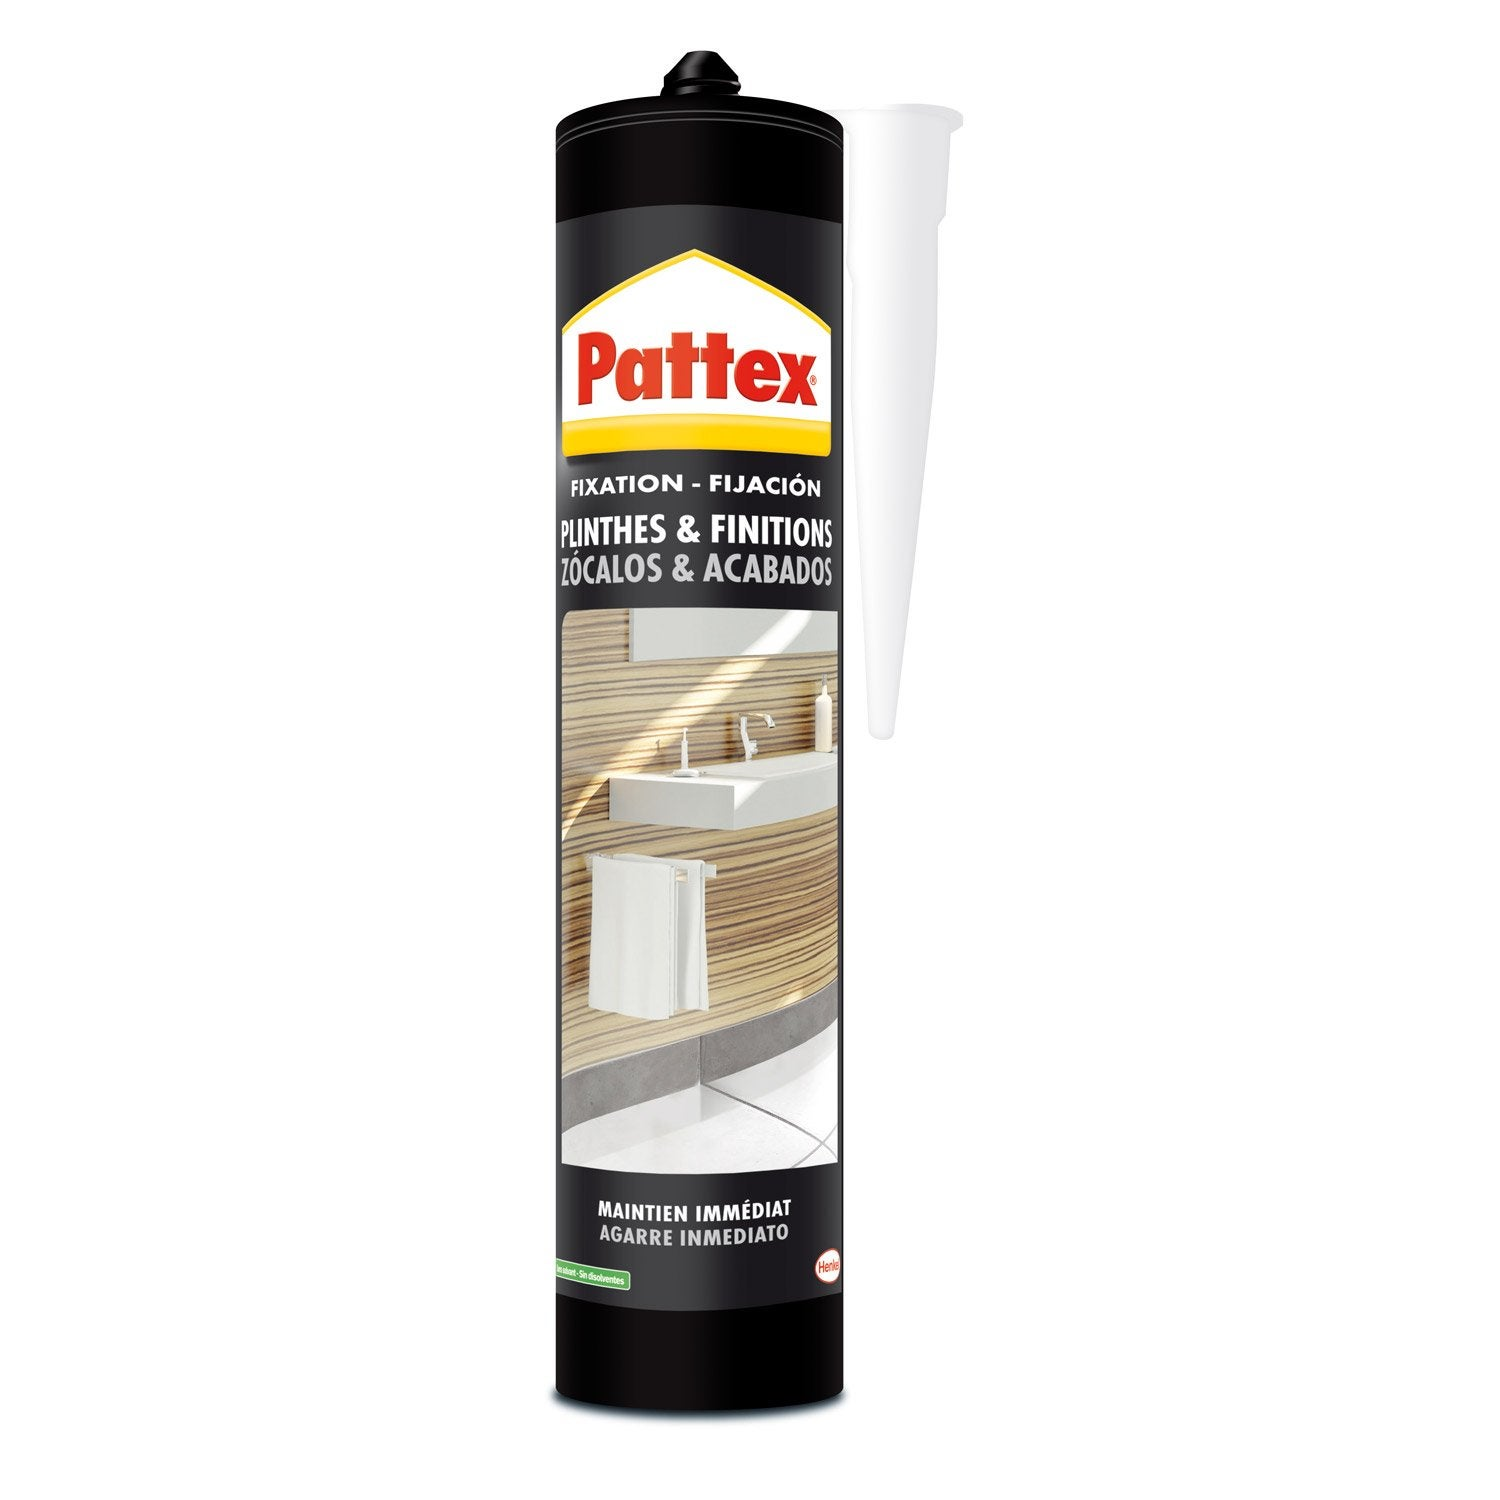 Colle mastic plinthes carrelages pattex 450 g leroy merlin for Colle pour carrelage sur carrelage